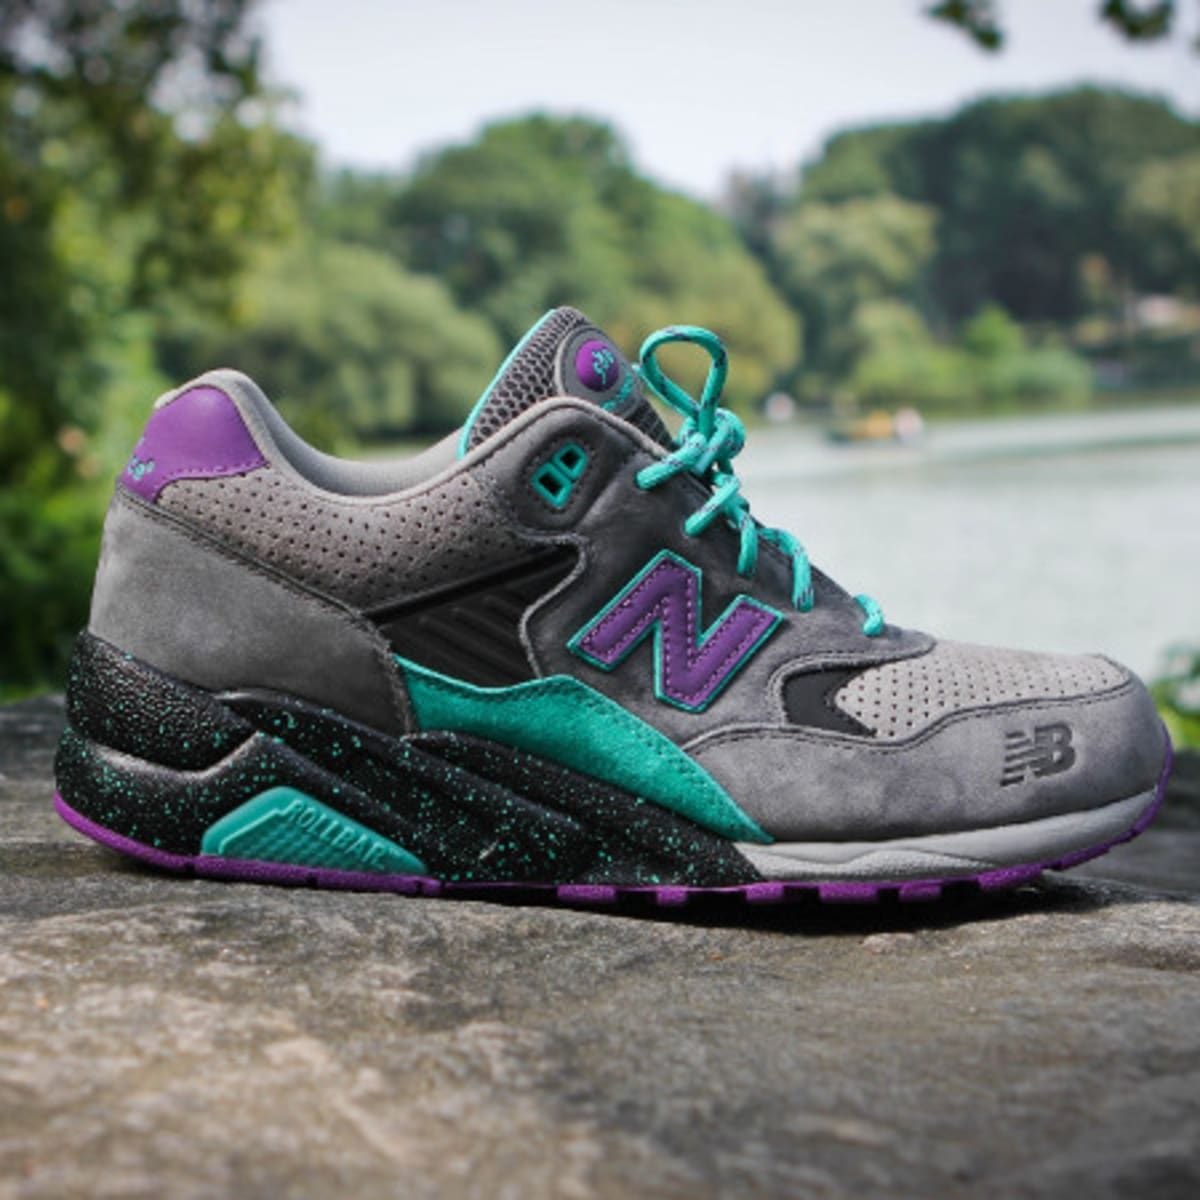 WEST NYC x New Balance MT580 - Alpine Guide Edition - Freshness Mag